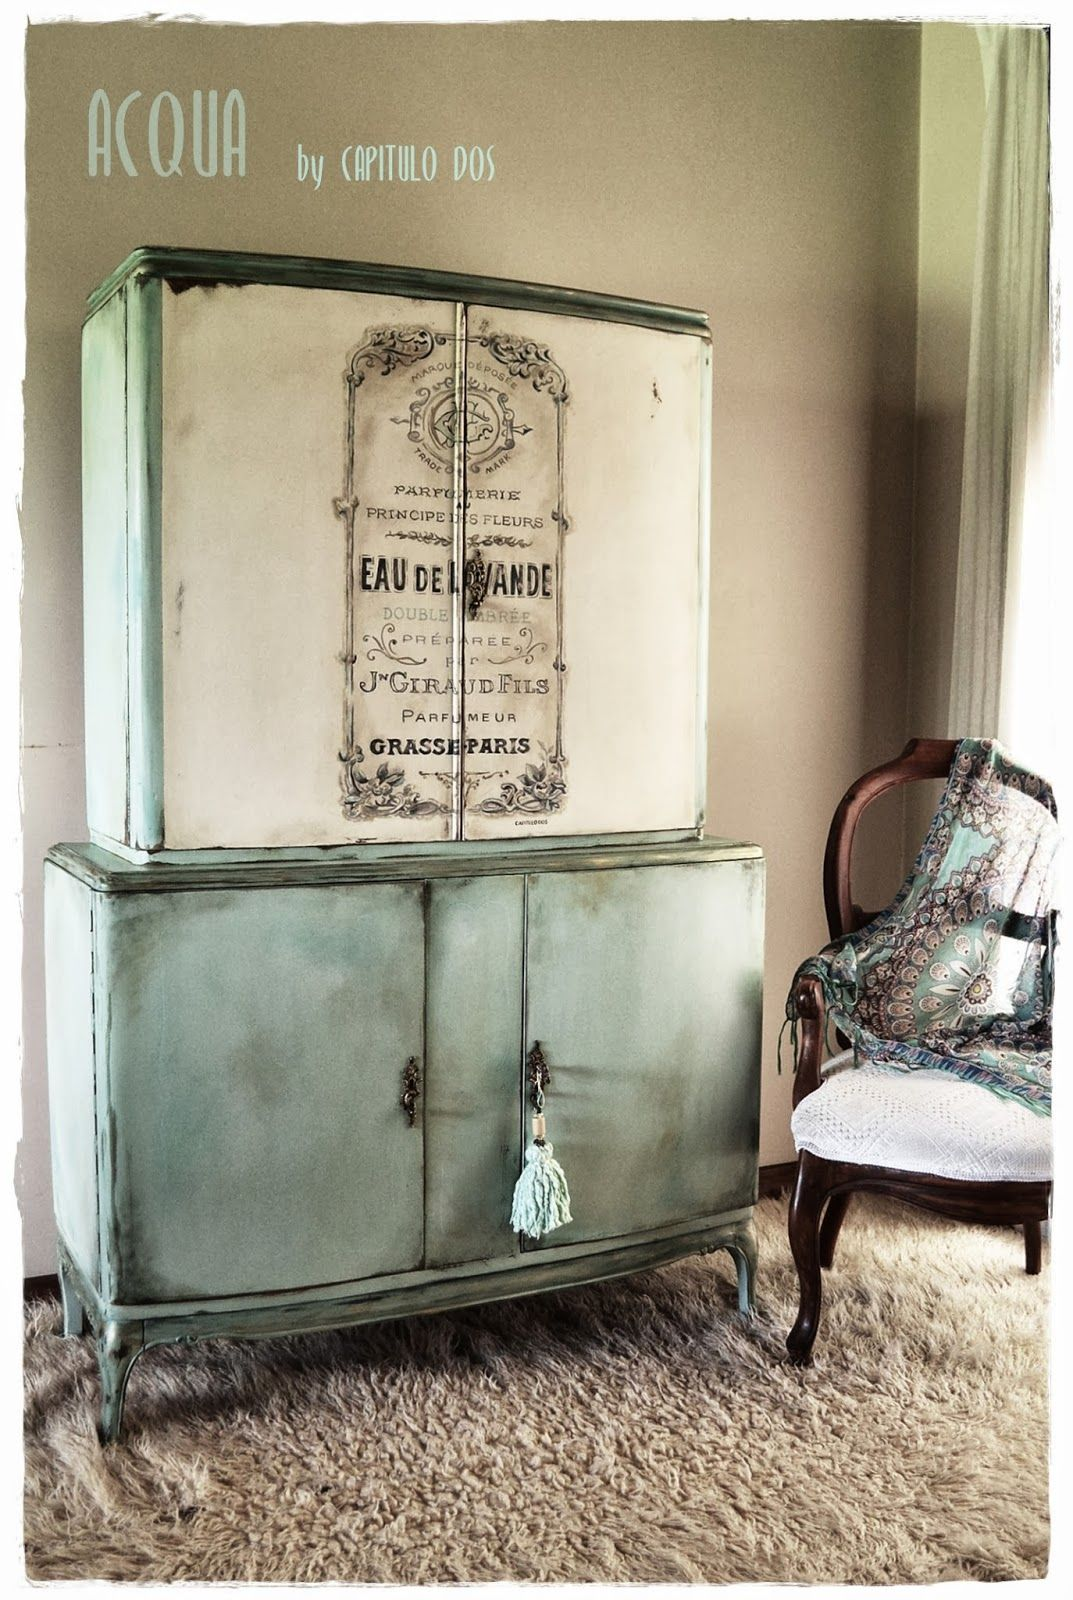 Capitulo dos for the home pinterest cupboard paint furniture